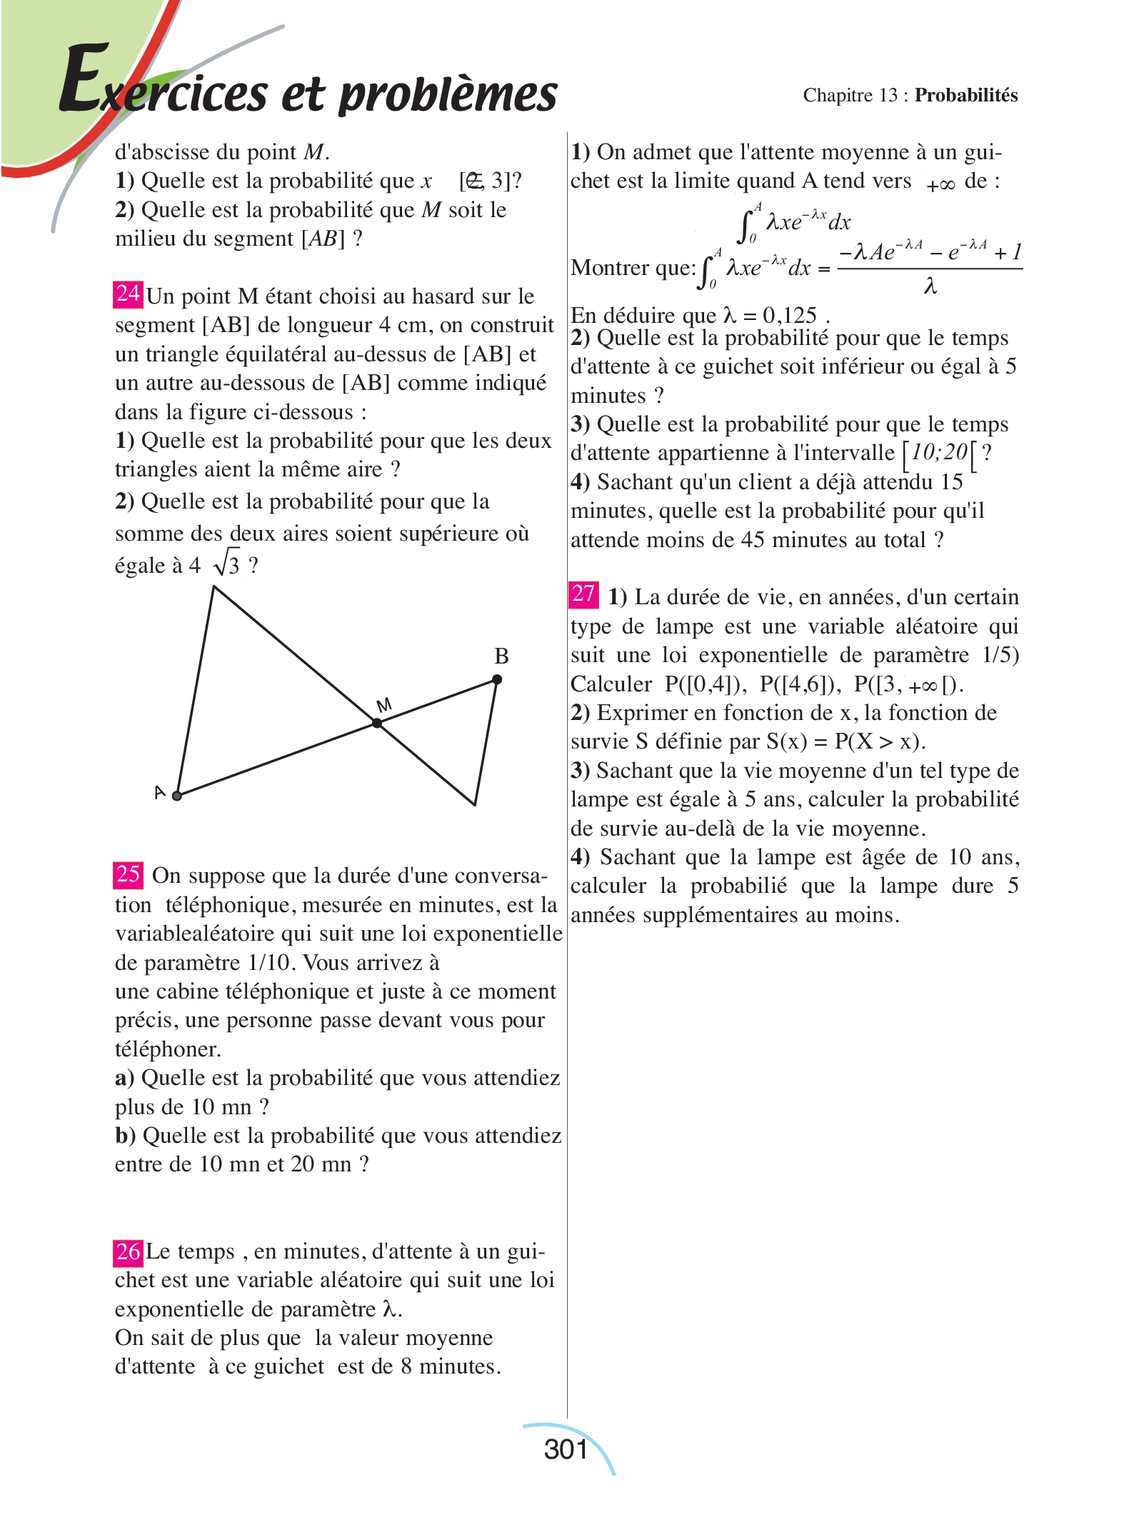 Page 301